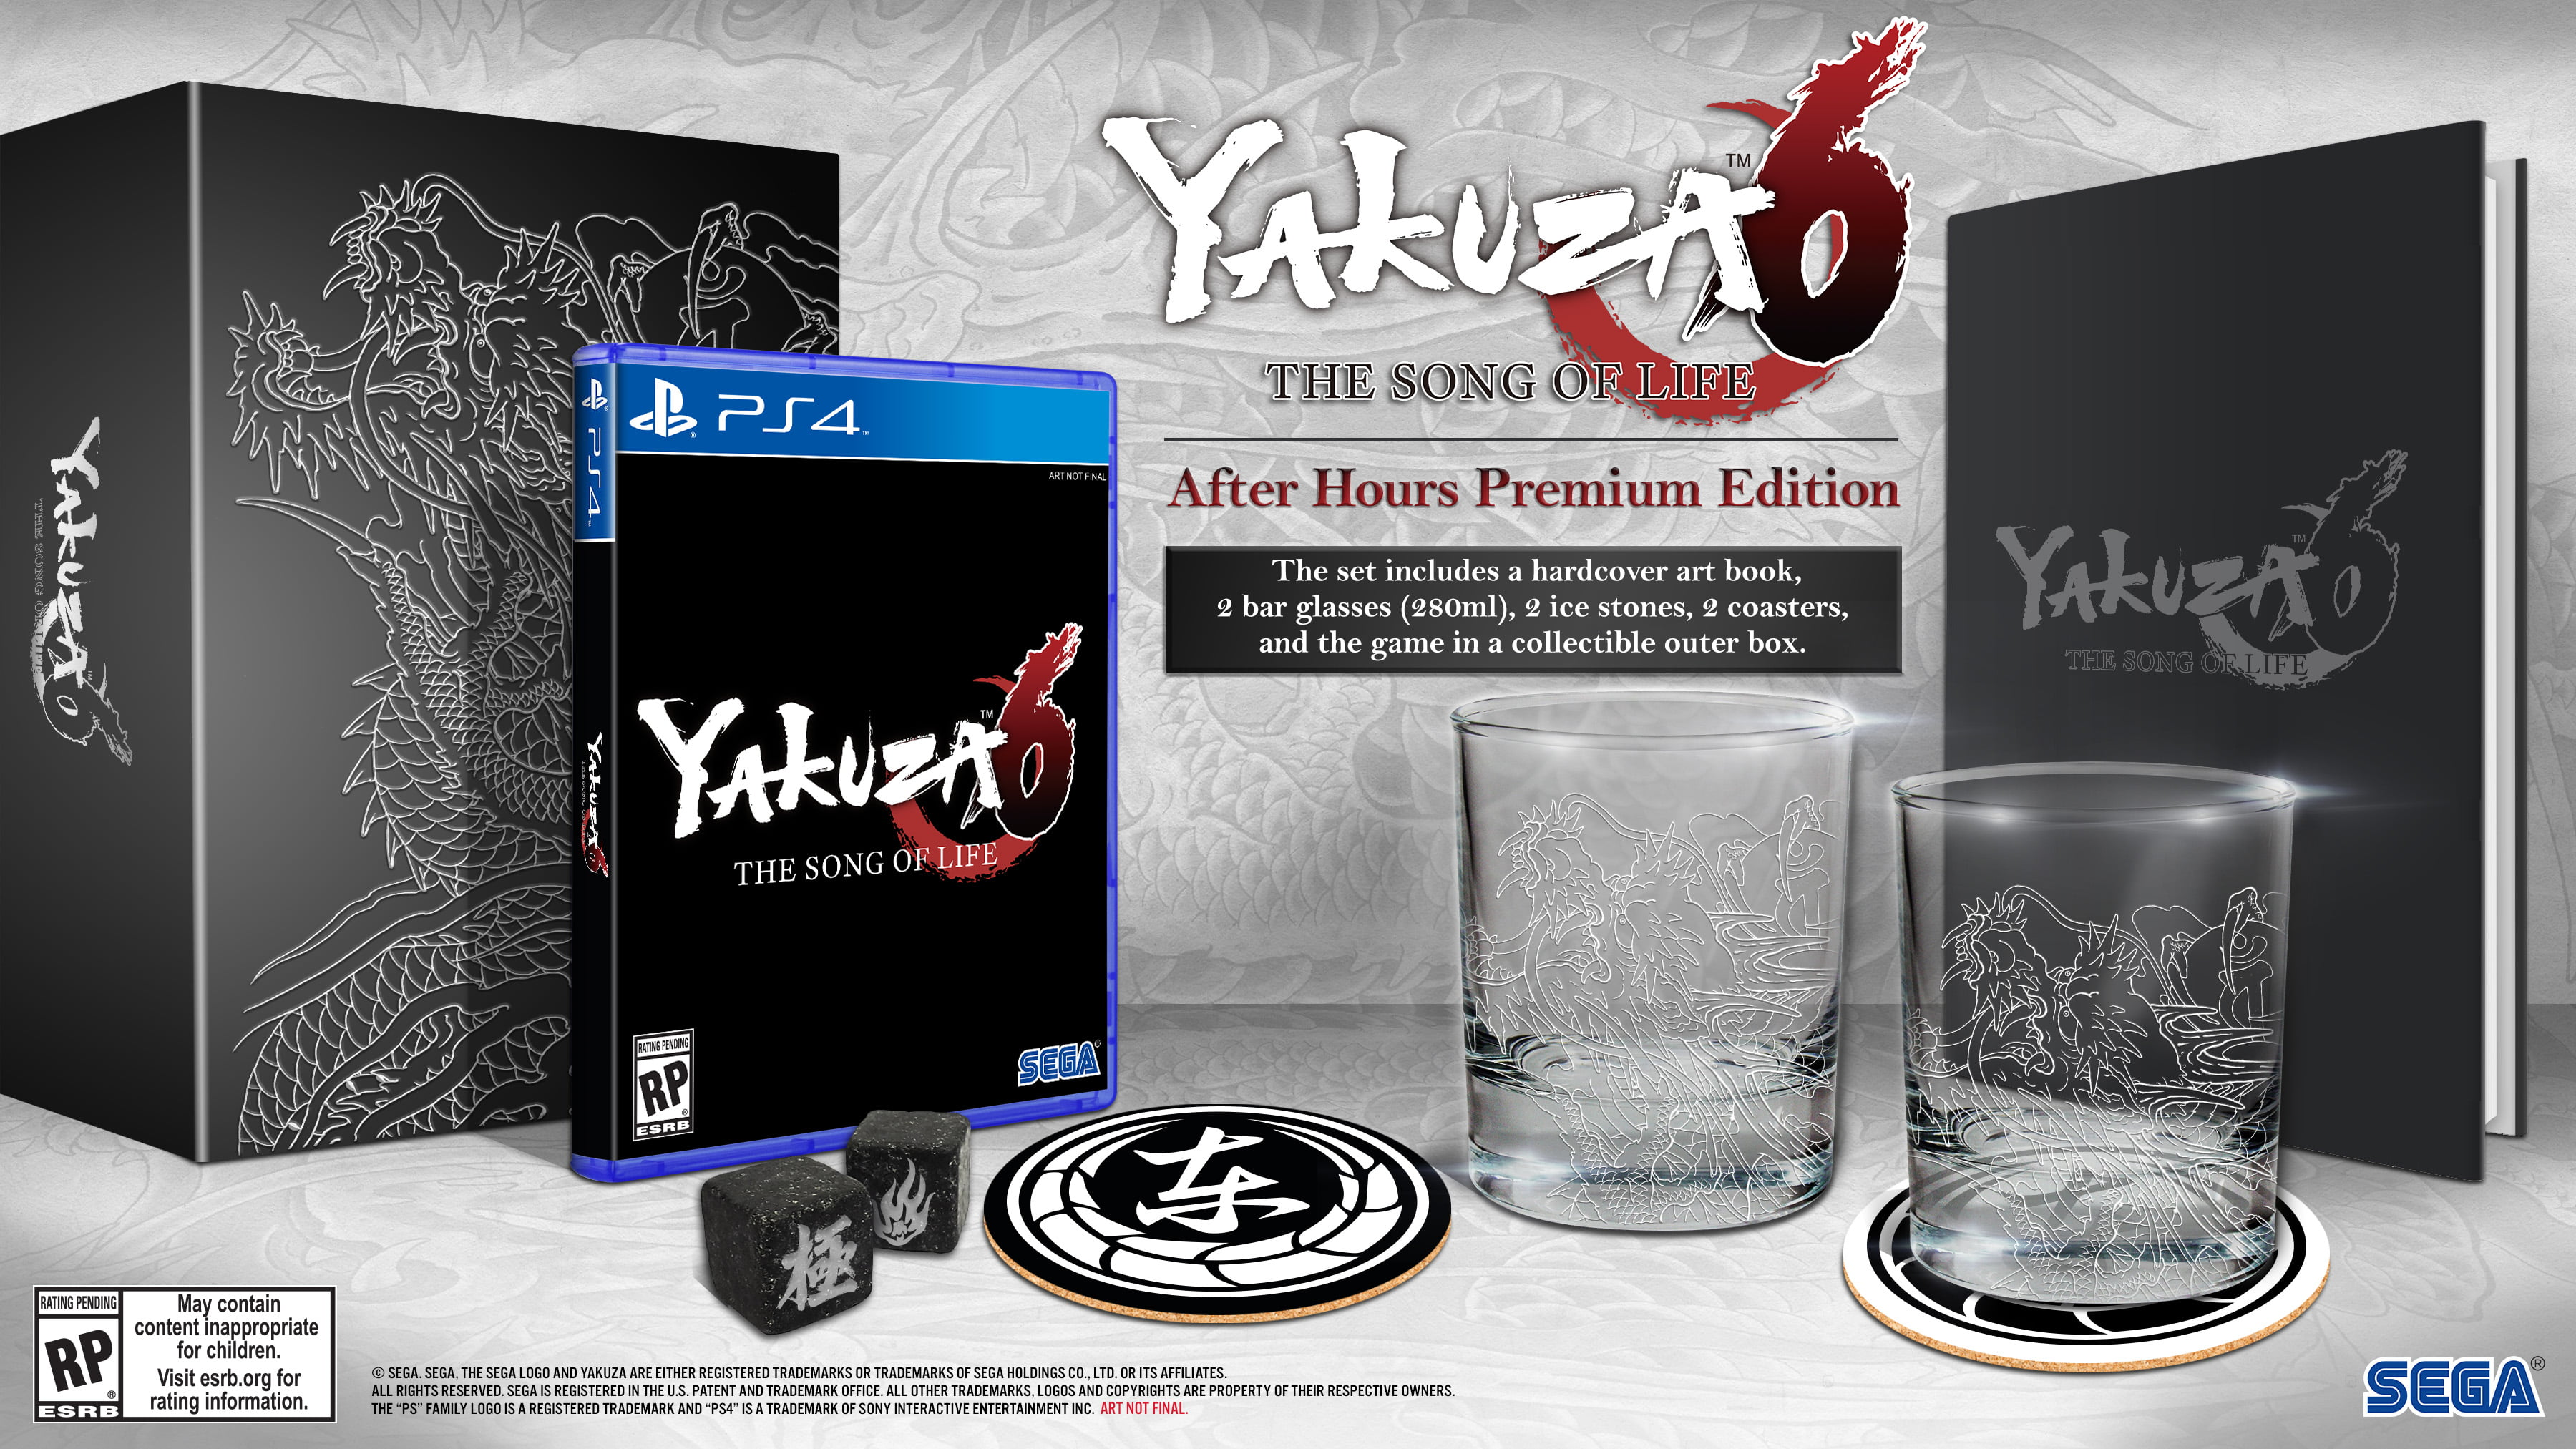 Yakuza 6: The Song of Life After Hours Premium Edition, Sega, PlayStation 4, 010086632231 by Sega